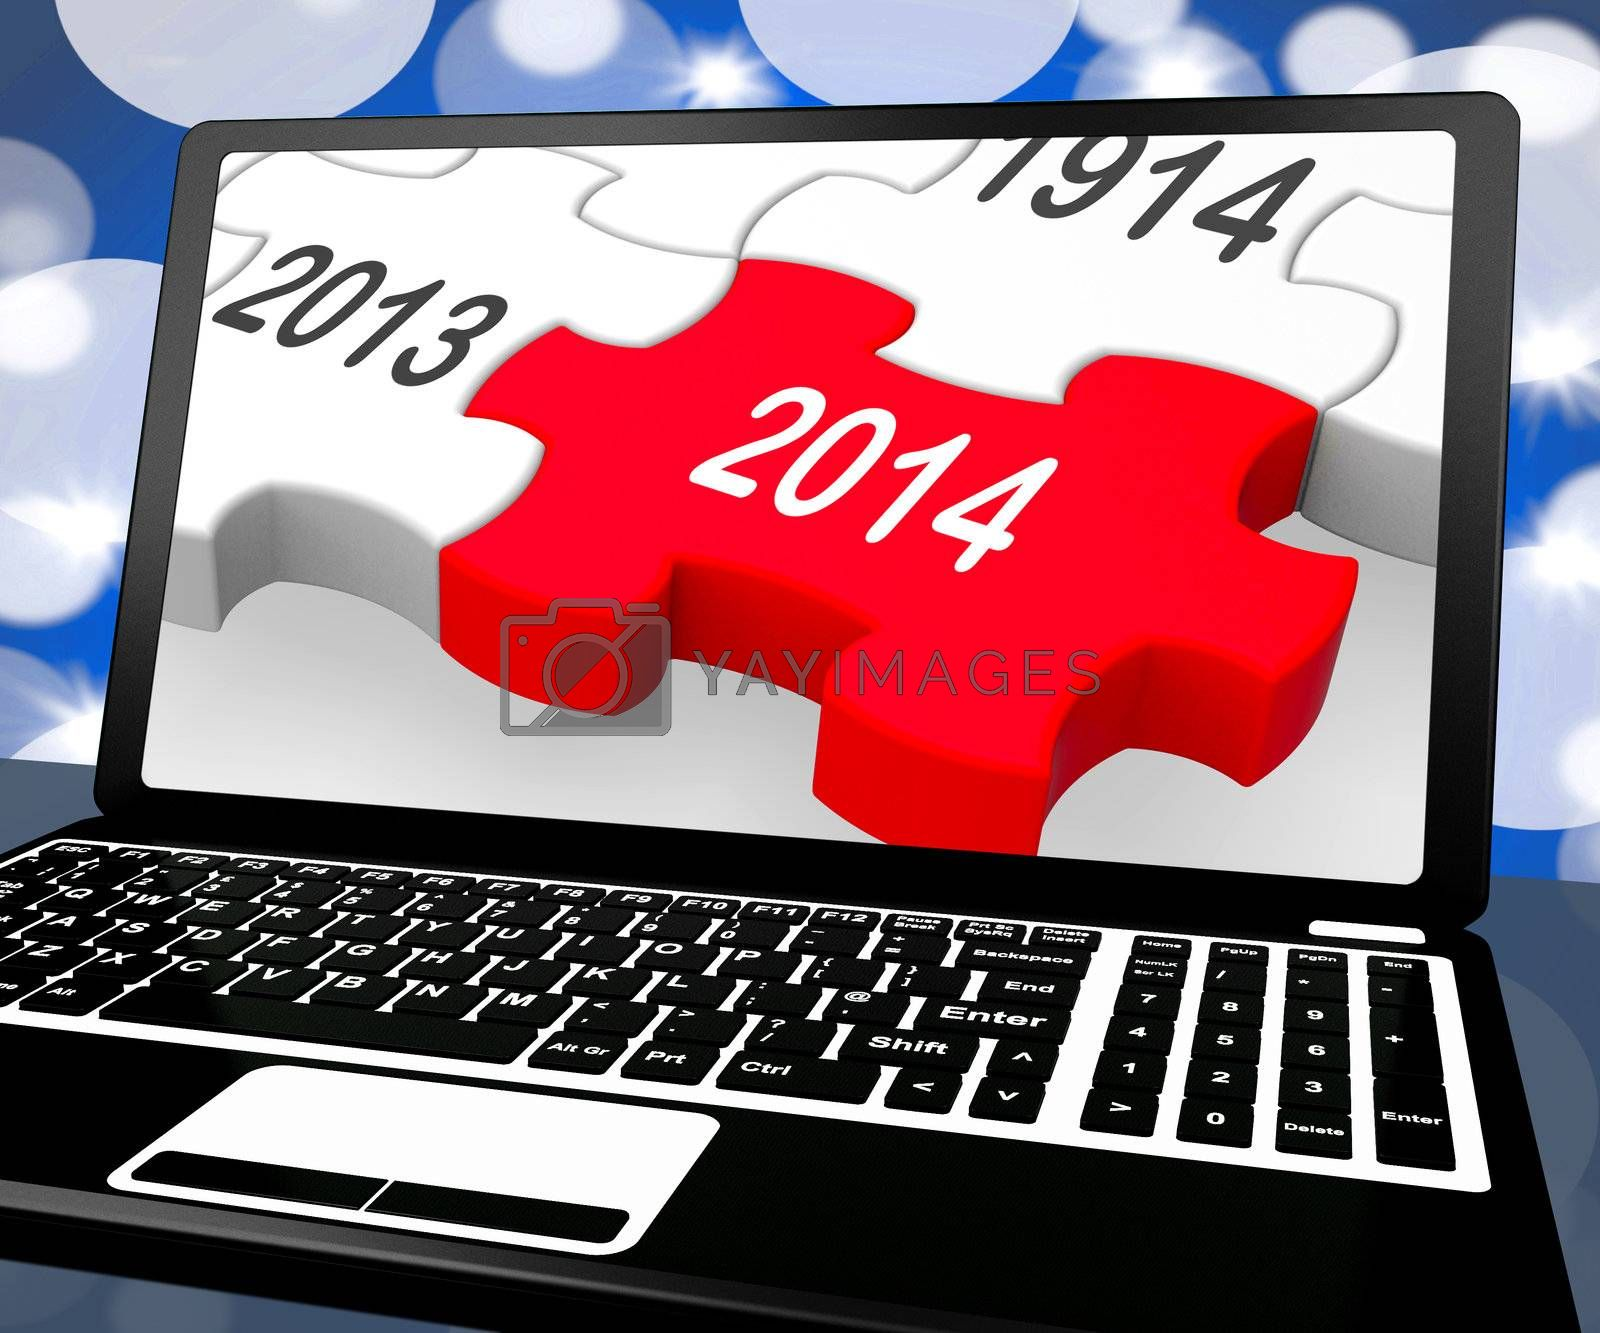 2014 On Laptop Shows Near Future Technology And Forecasts